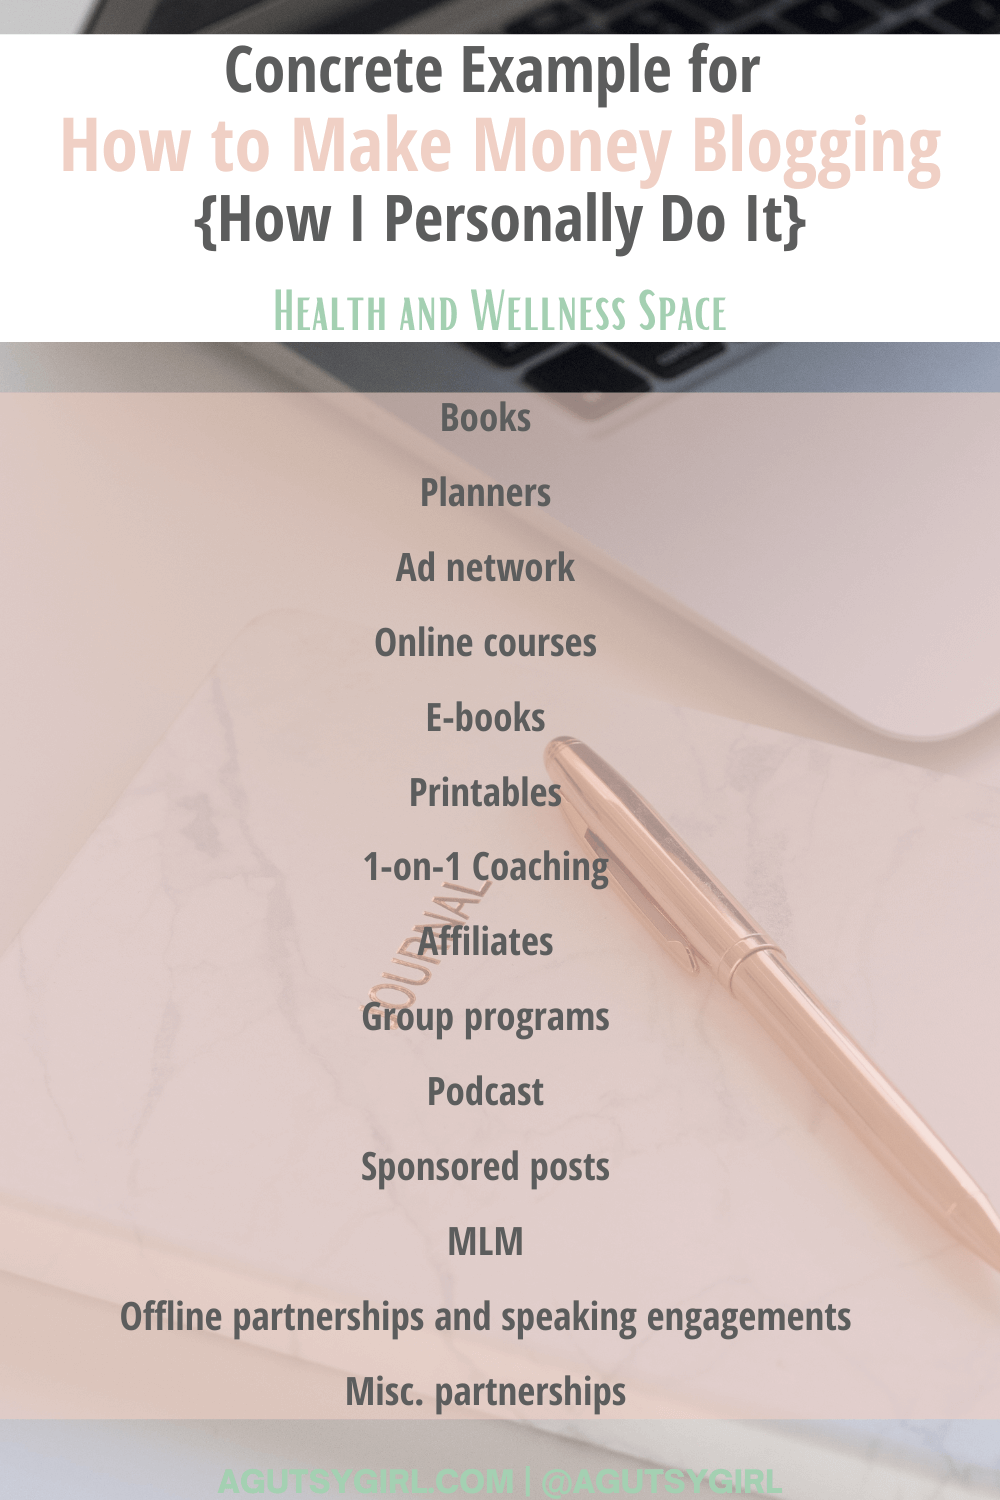 Concrete Examples in the Health Space for How to Make a Living Blogging agutsygirl.com #blogging #onlinebusiness #iin